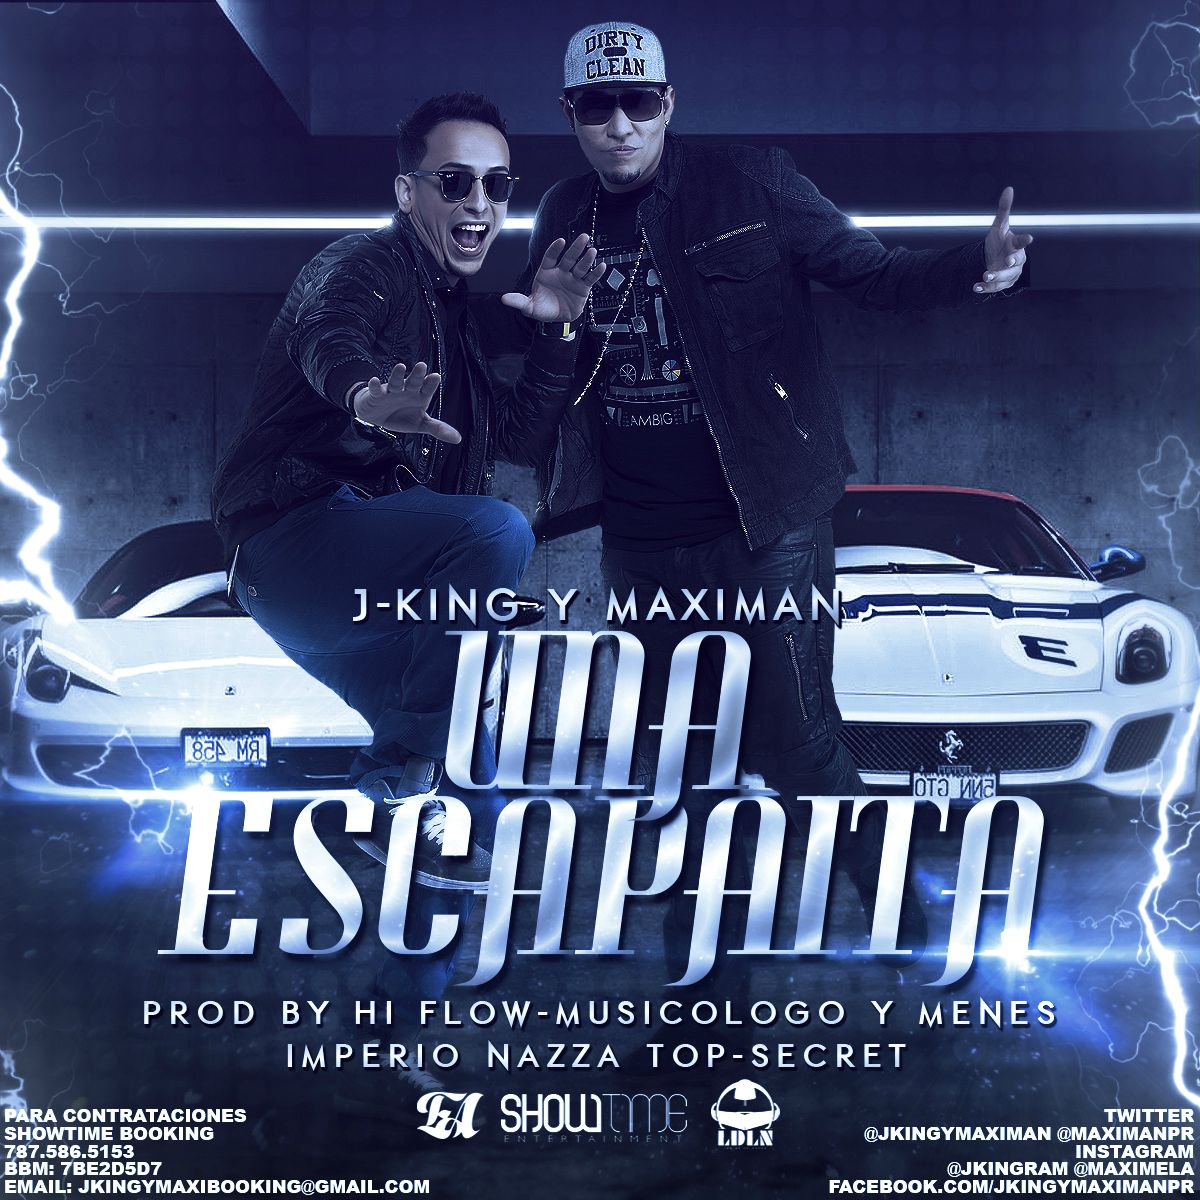 J King Y Maximan – Una Escapaita (Prod. By Musicologo Y Menes) (Imperio Nazza Top Secret)